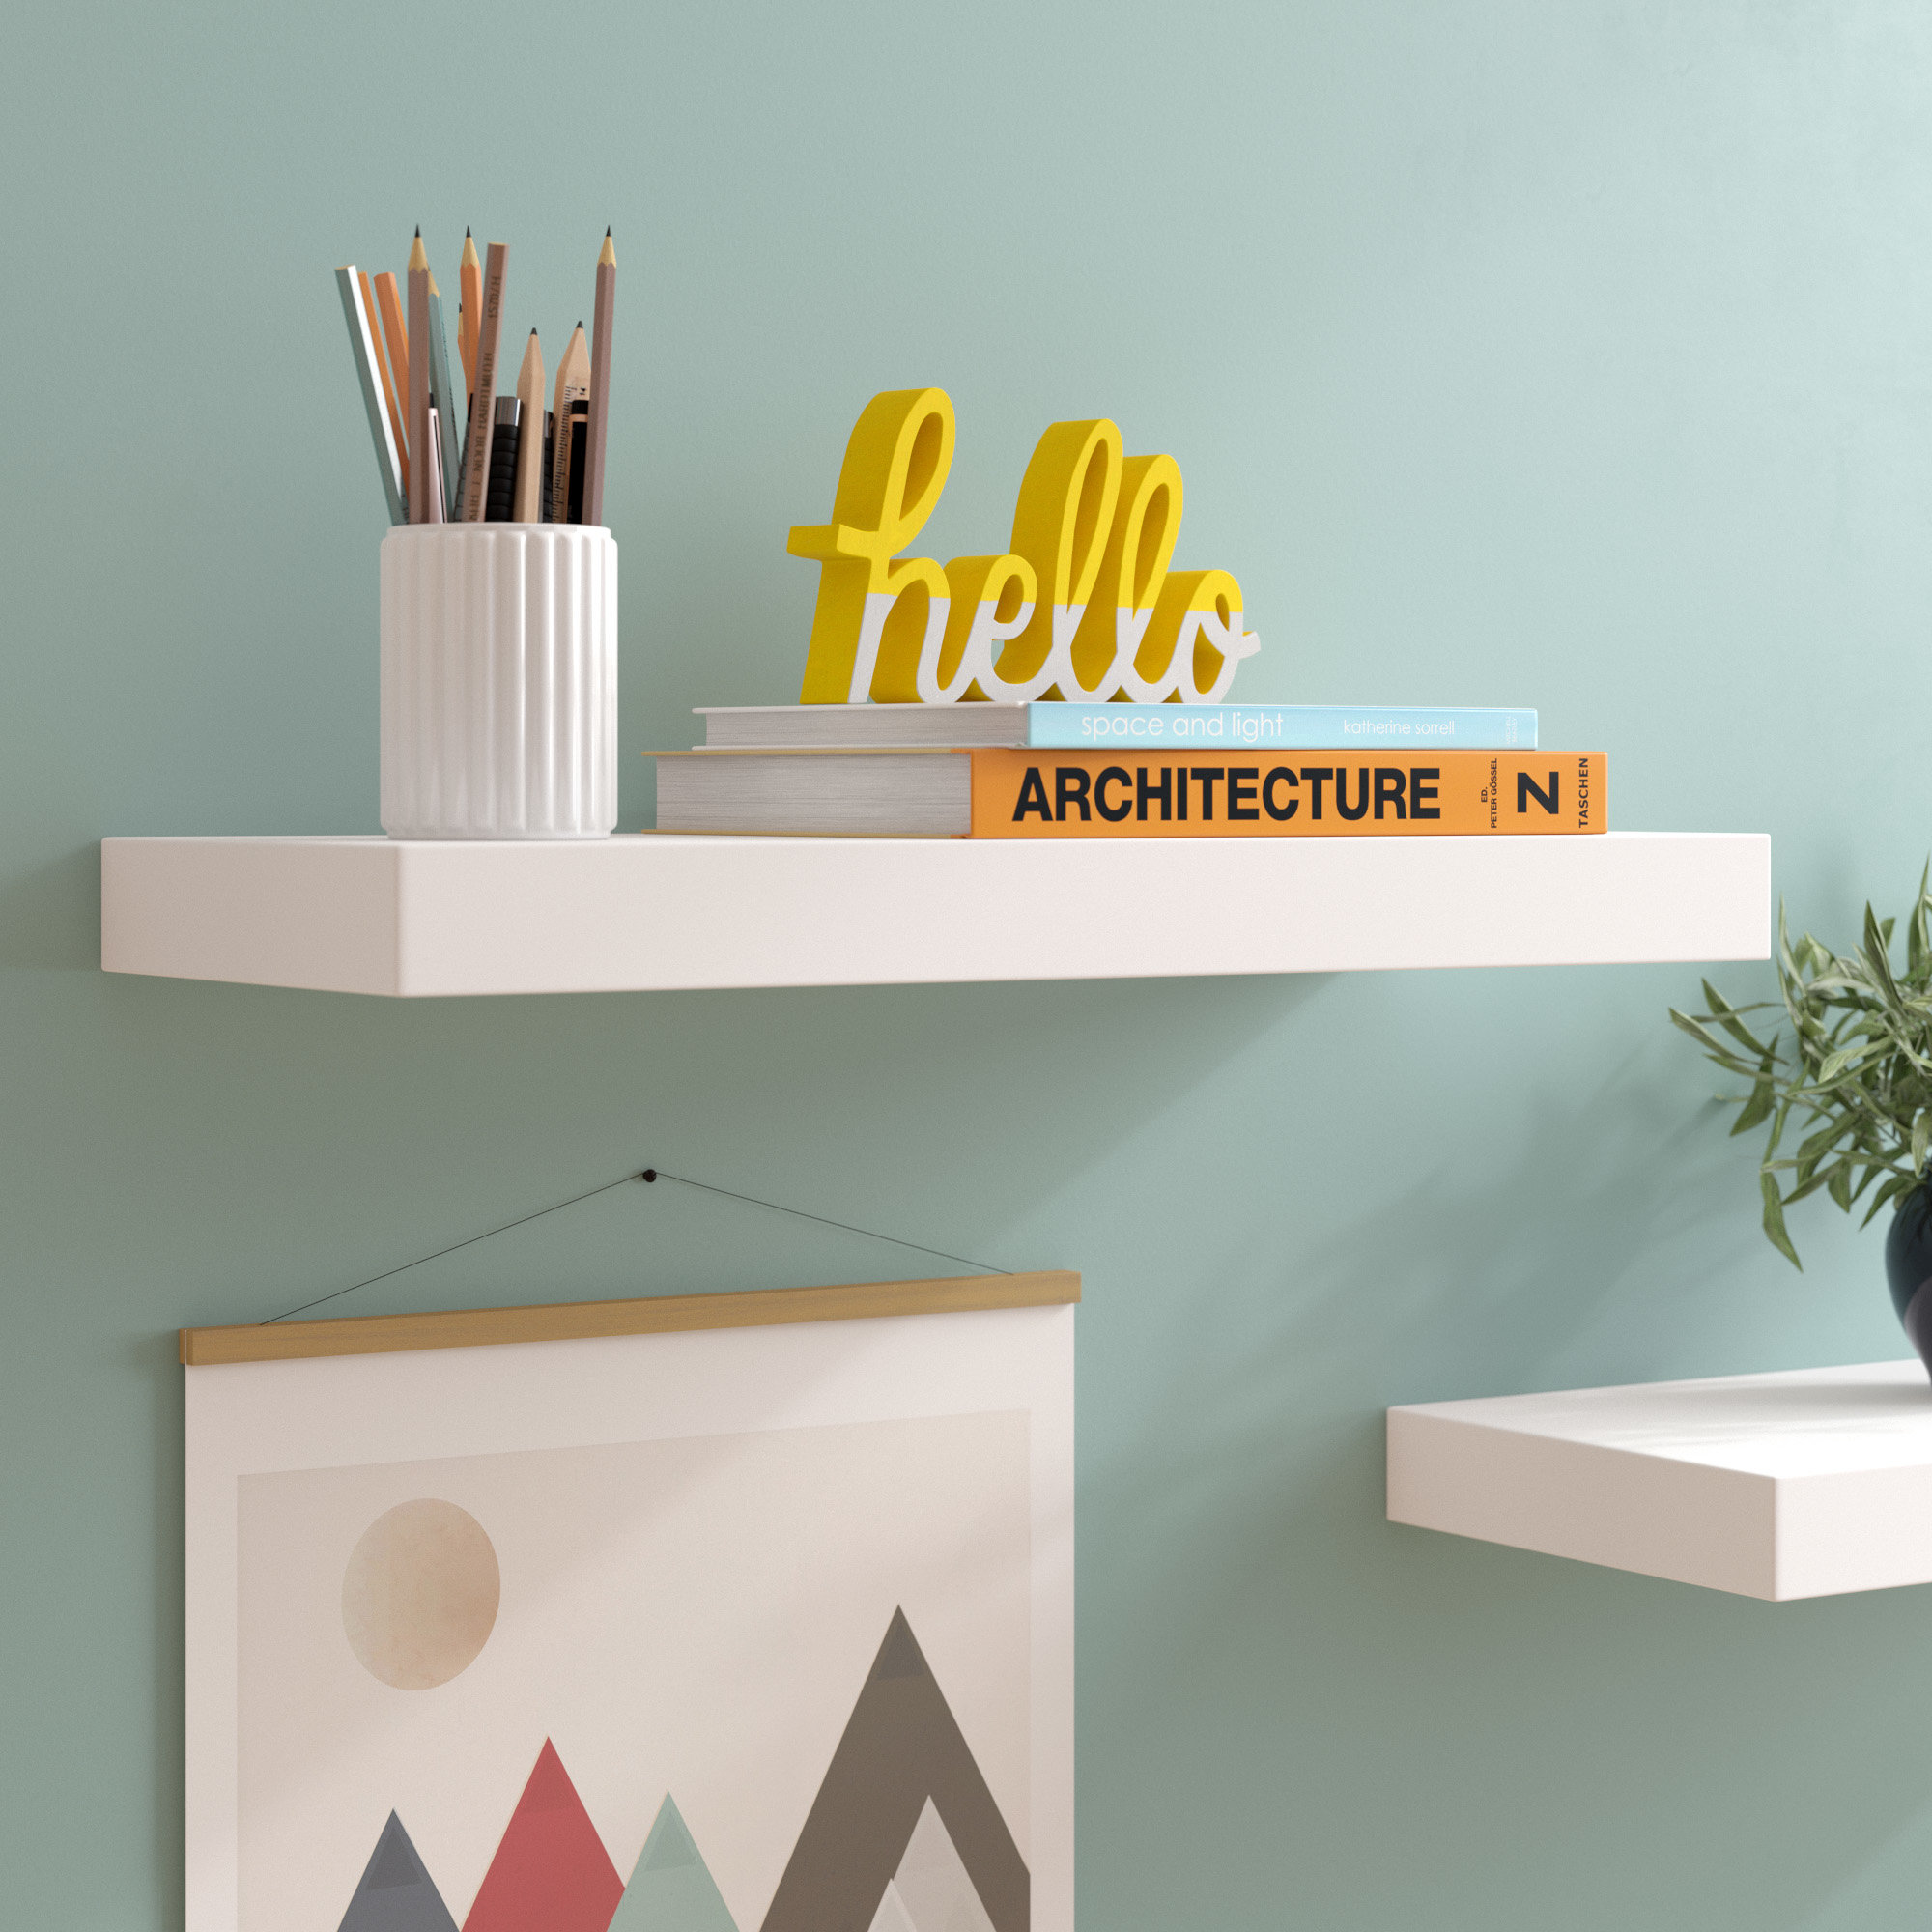 zipcode design isabella floating shelf reviews extra long white shelves commercial shelving units modern unique desktop desk ledge with hooks wall rack for coats and hats inch